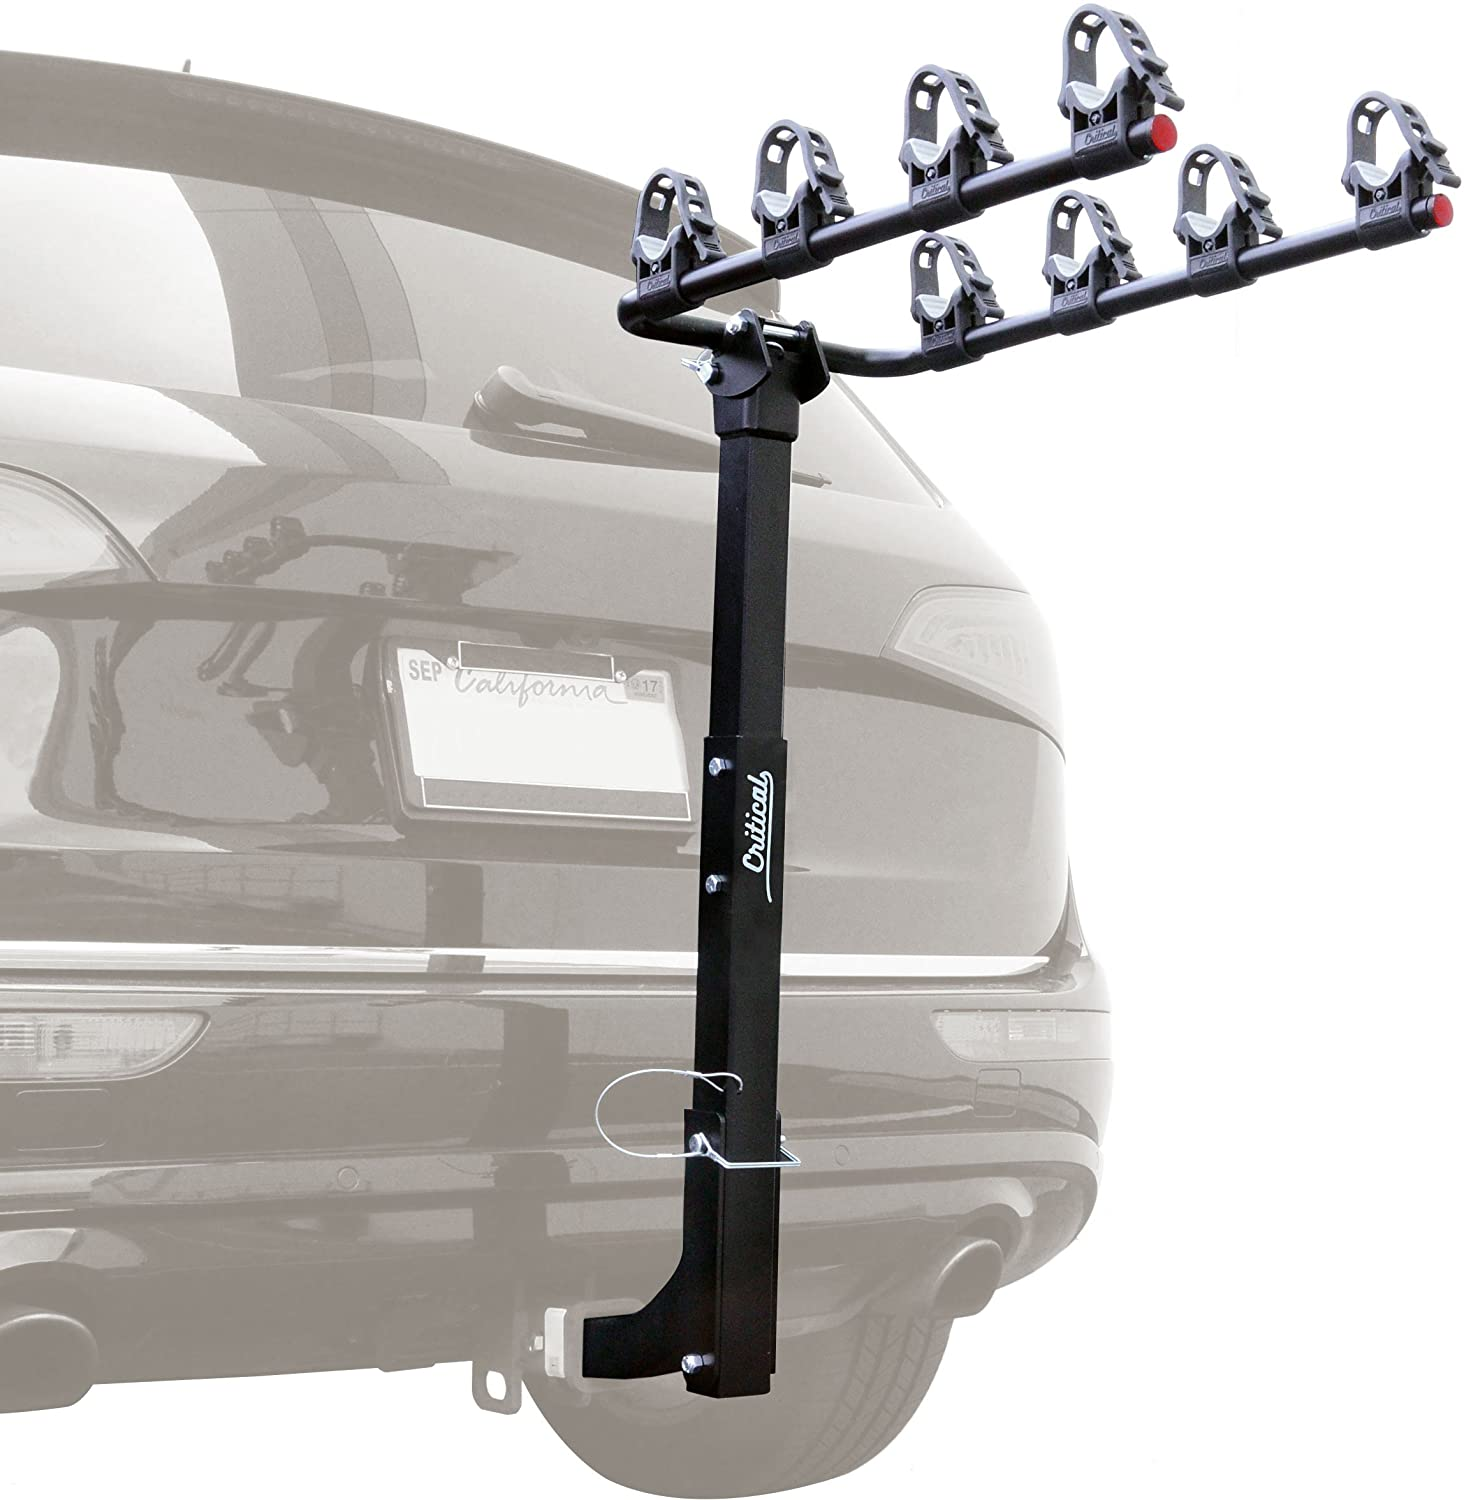 Retrospec Lenox Car Hitch Mount Bike Rack with 2-Inch Receiver